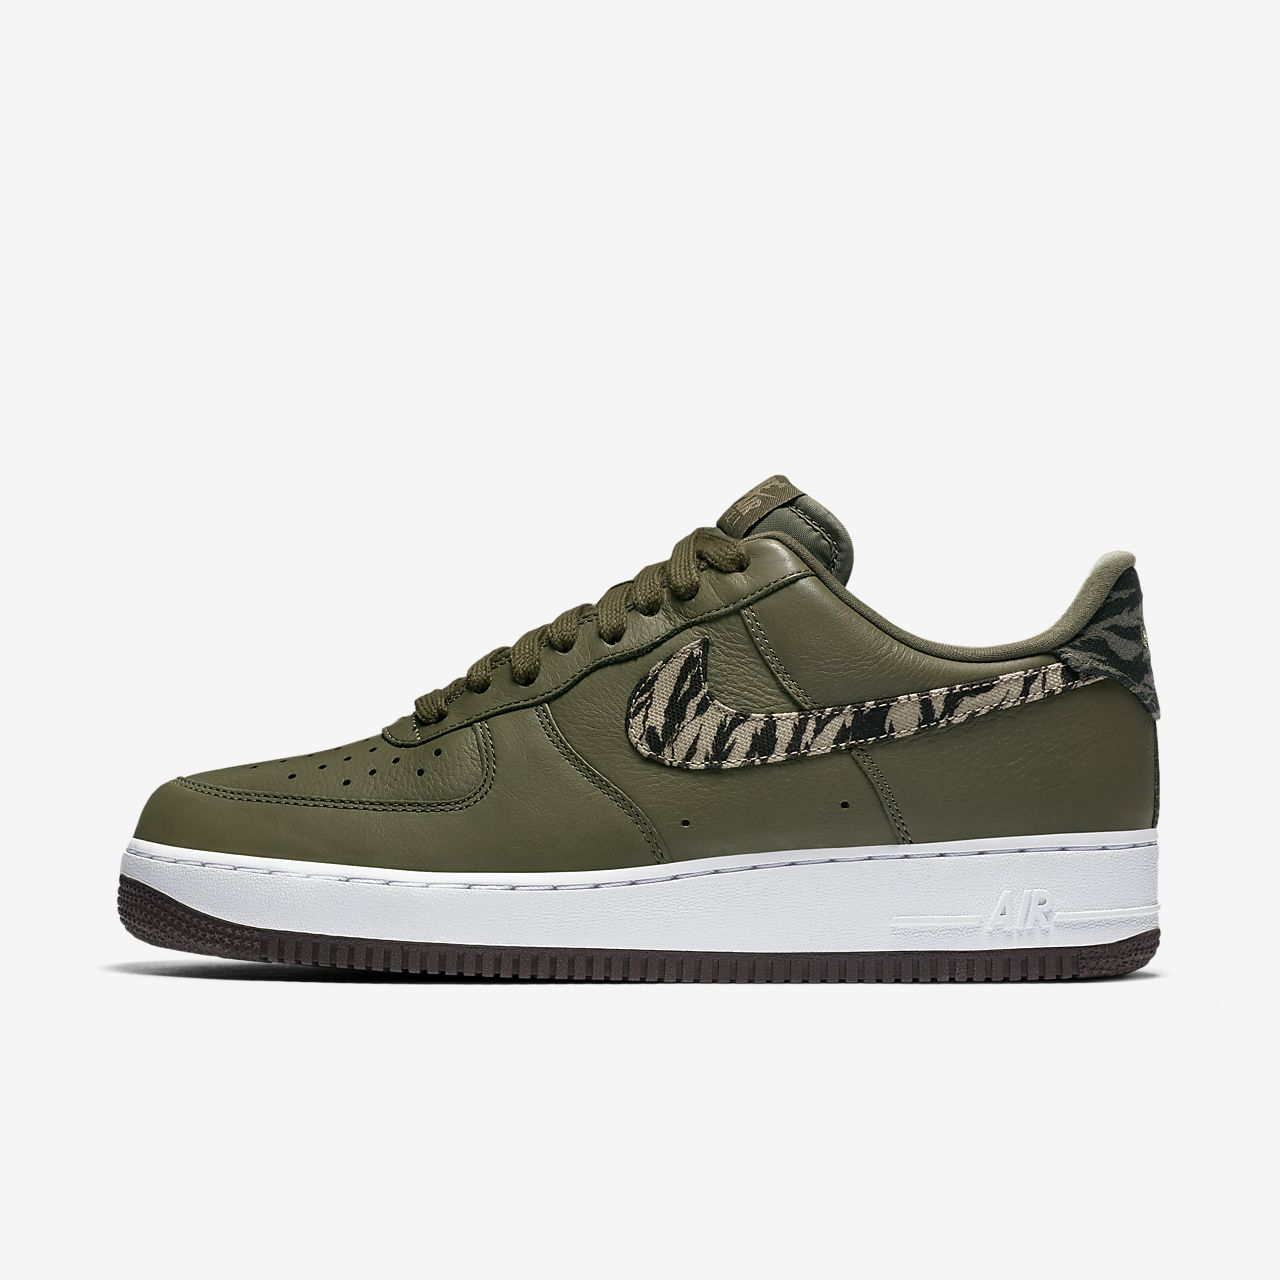 nike air force 1 low 07 nba men's shoe nz